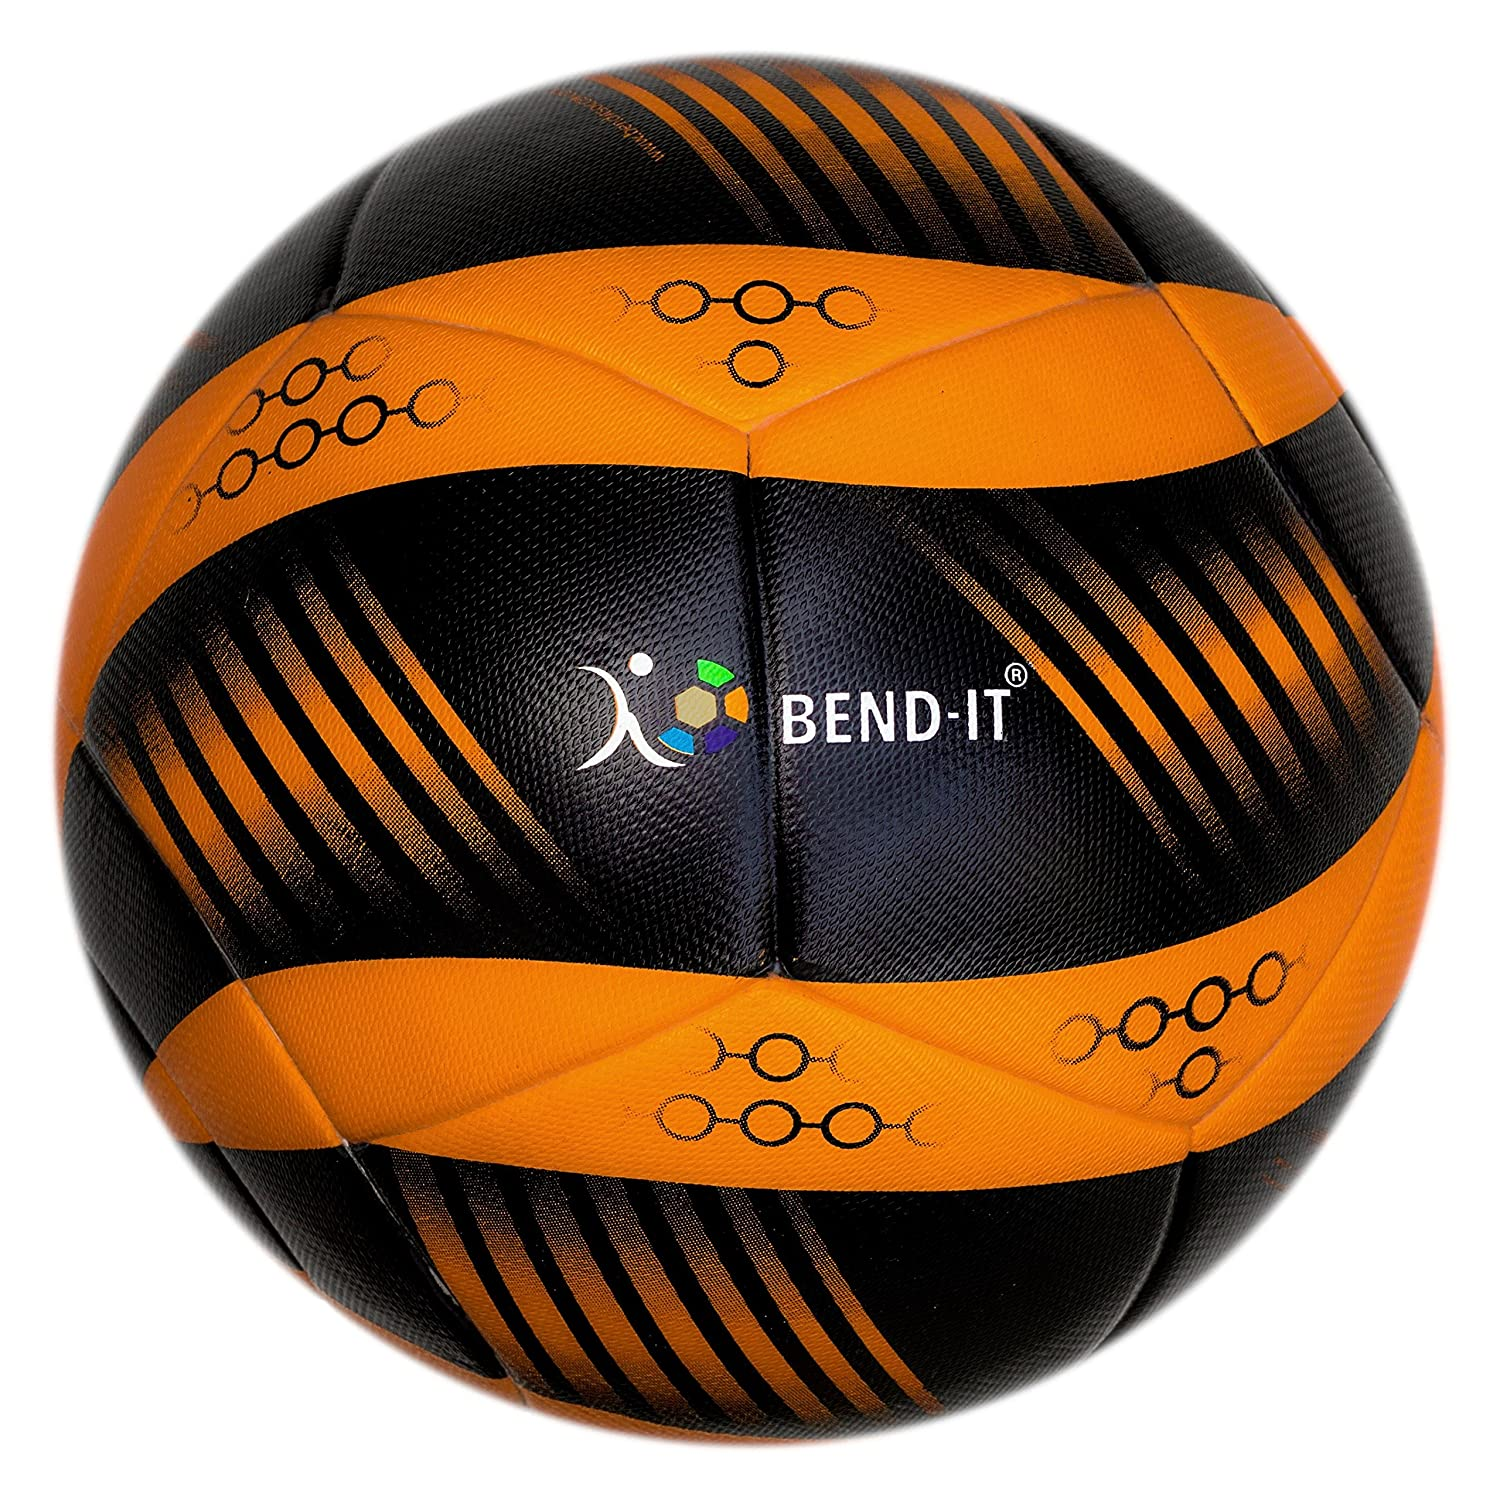 bend-itサッカー、knuckle-it Pro、サッカーボール、Official Match Ball with VPM and VRCテクノロジー B075RLPV3N 5|Orange/Black (Curl-It Pro Amber) Orange/Black (Curl-It Pro Amber) 5